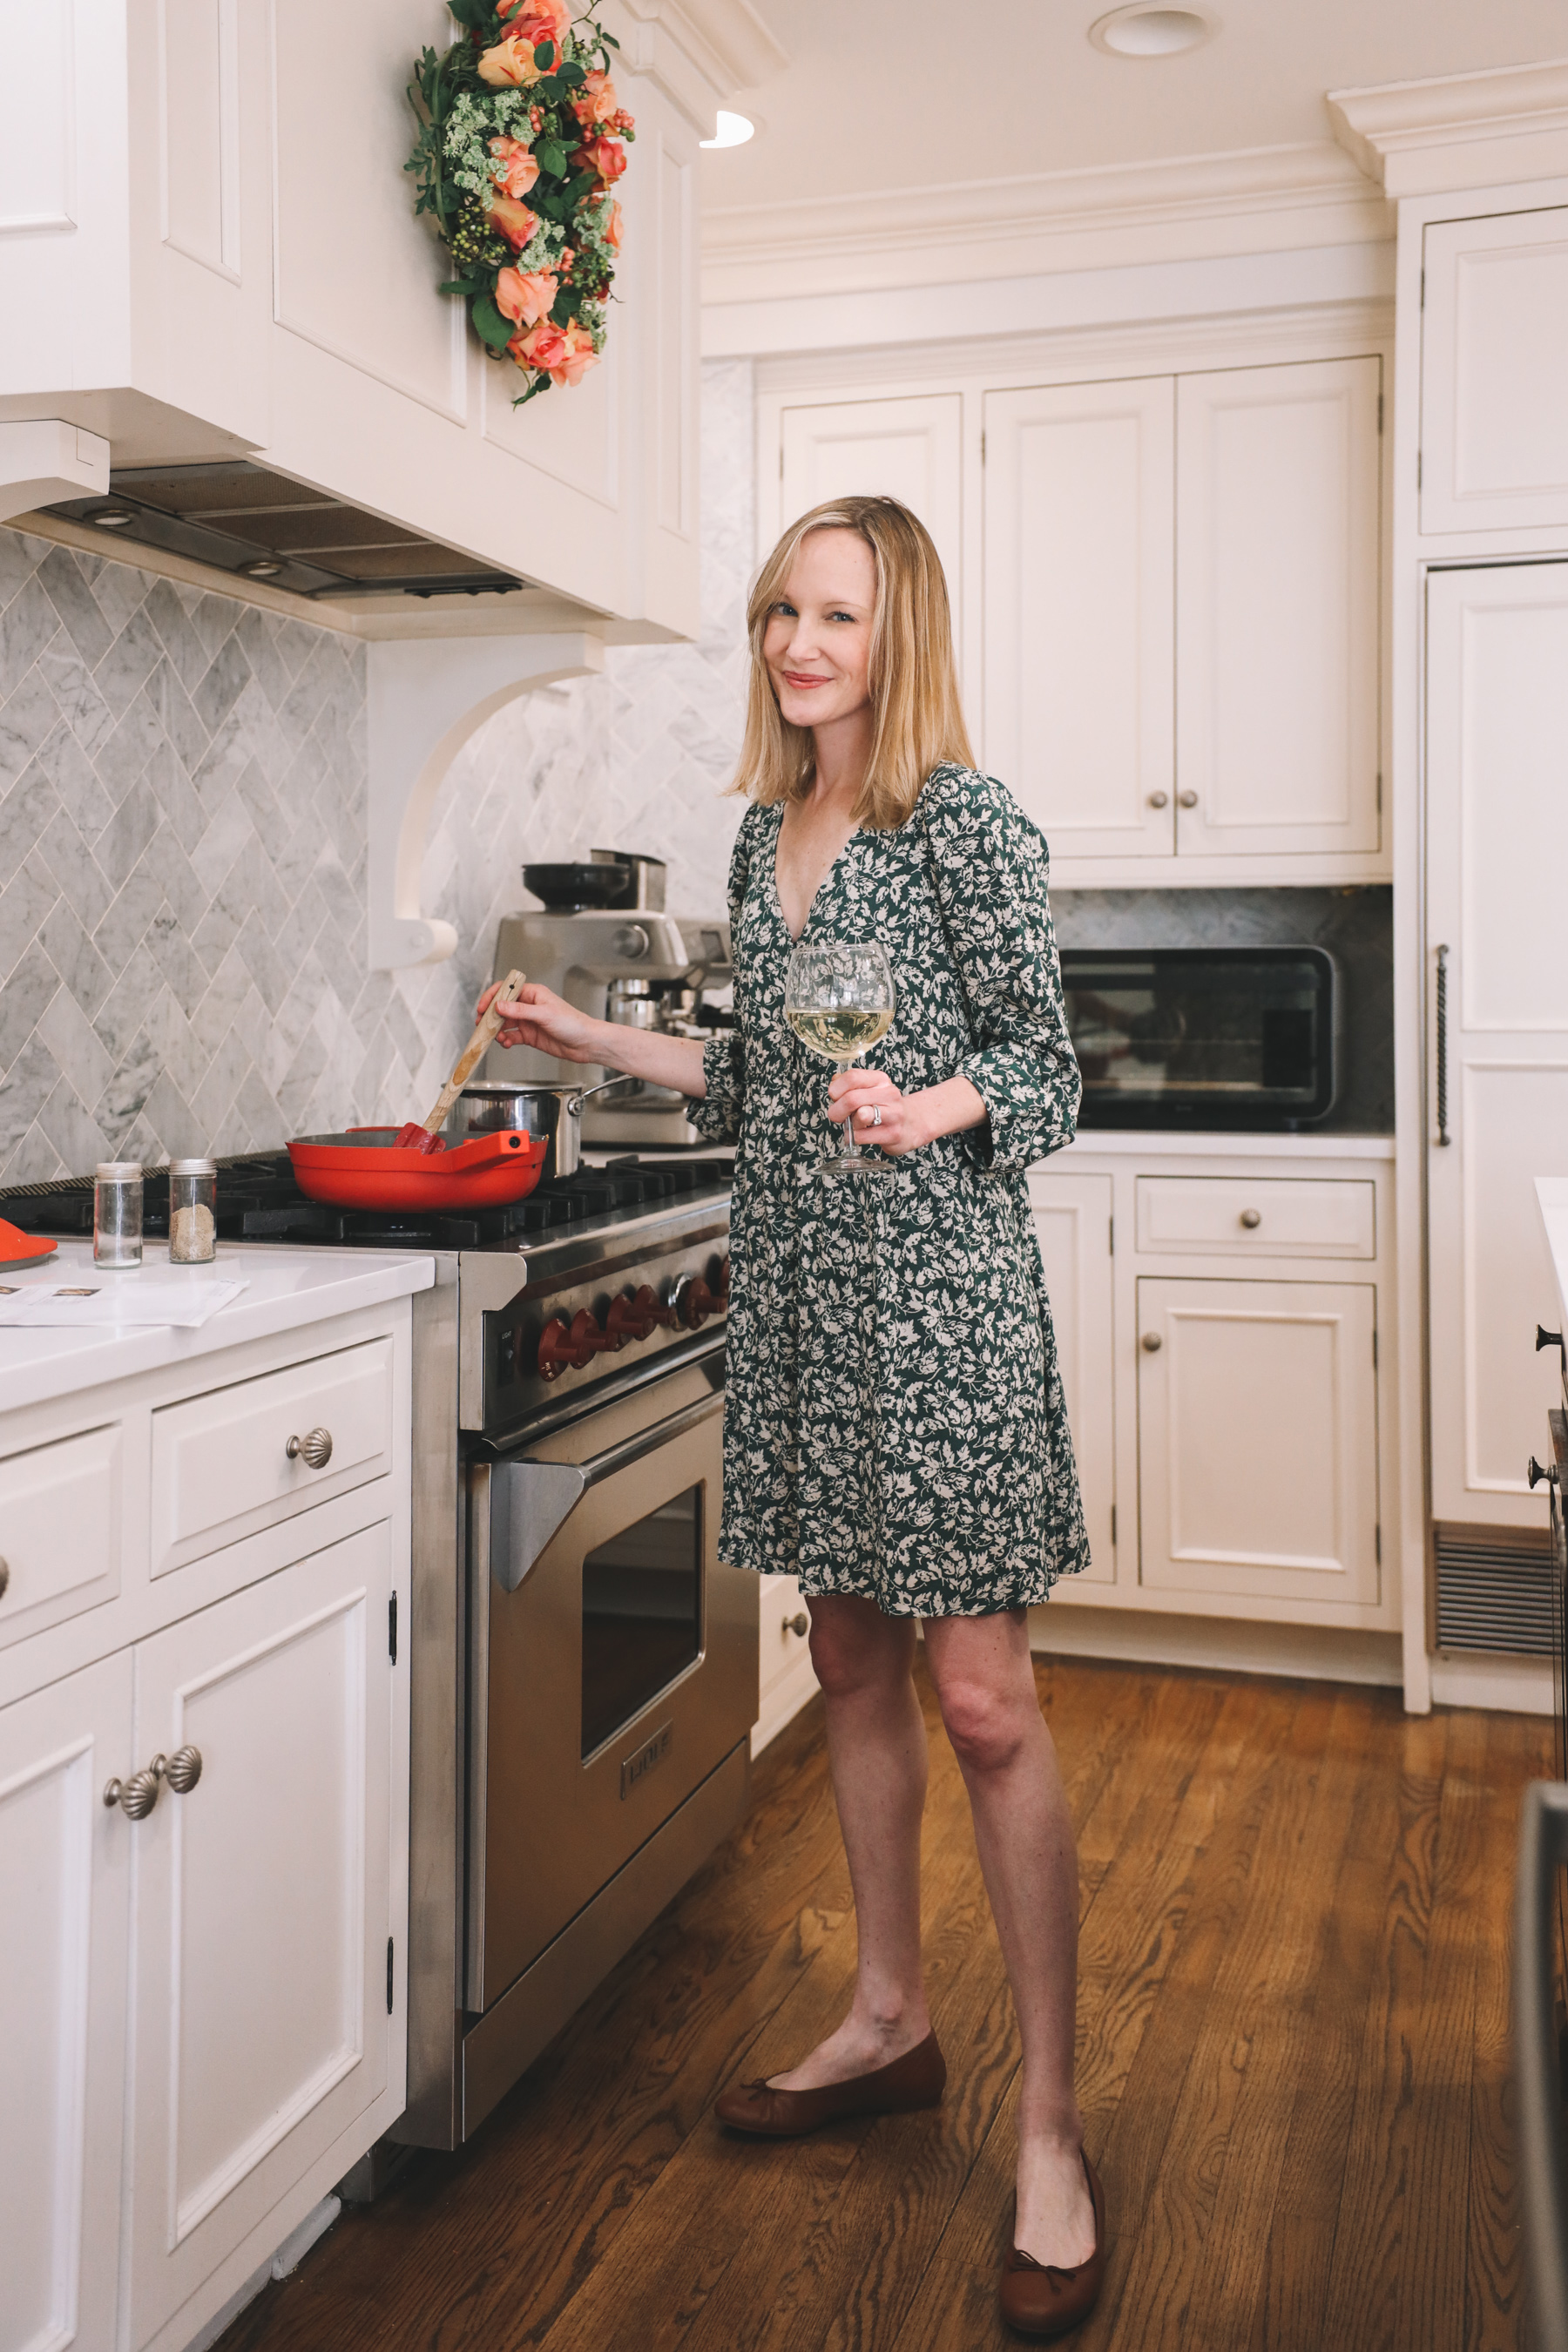 Kelly in the City + Blue Apron Offer